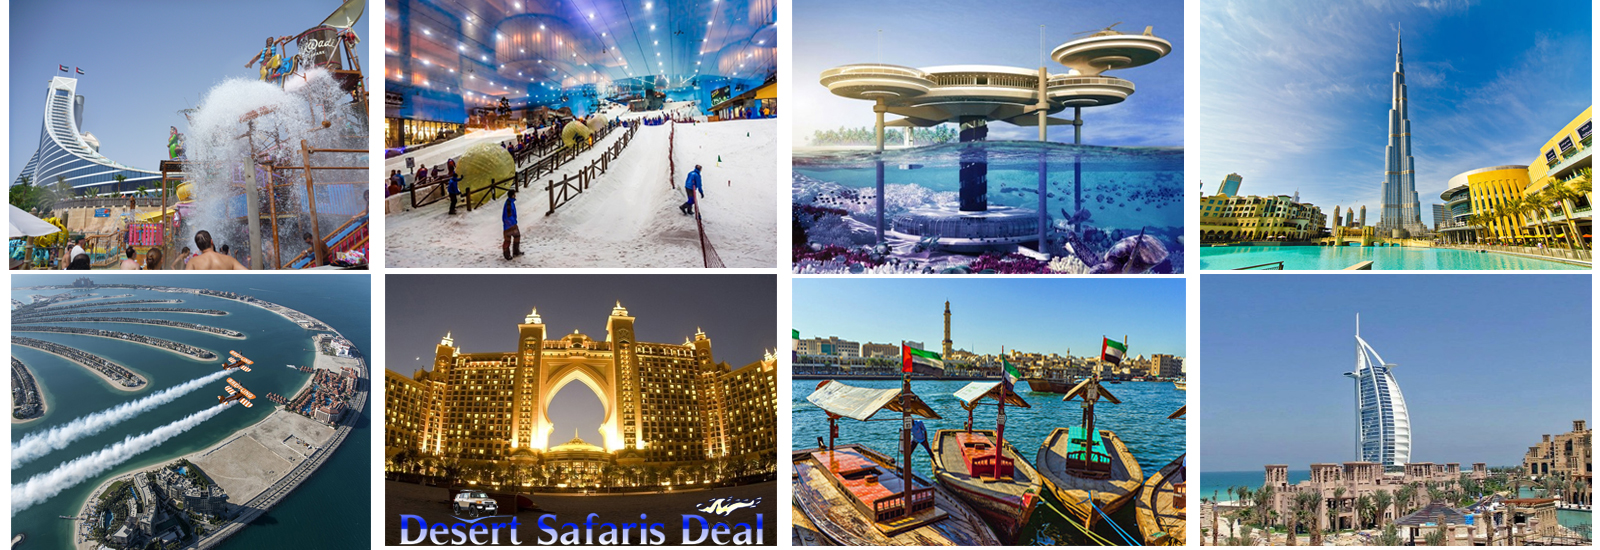 Dubai Attractions Dubai Have Too Many Attractive Places To Visit